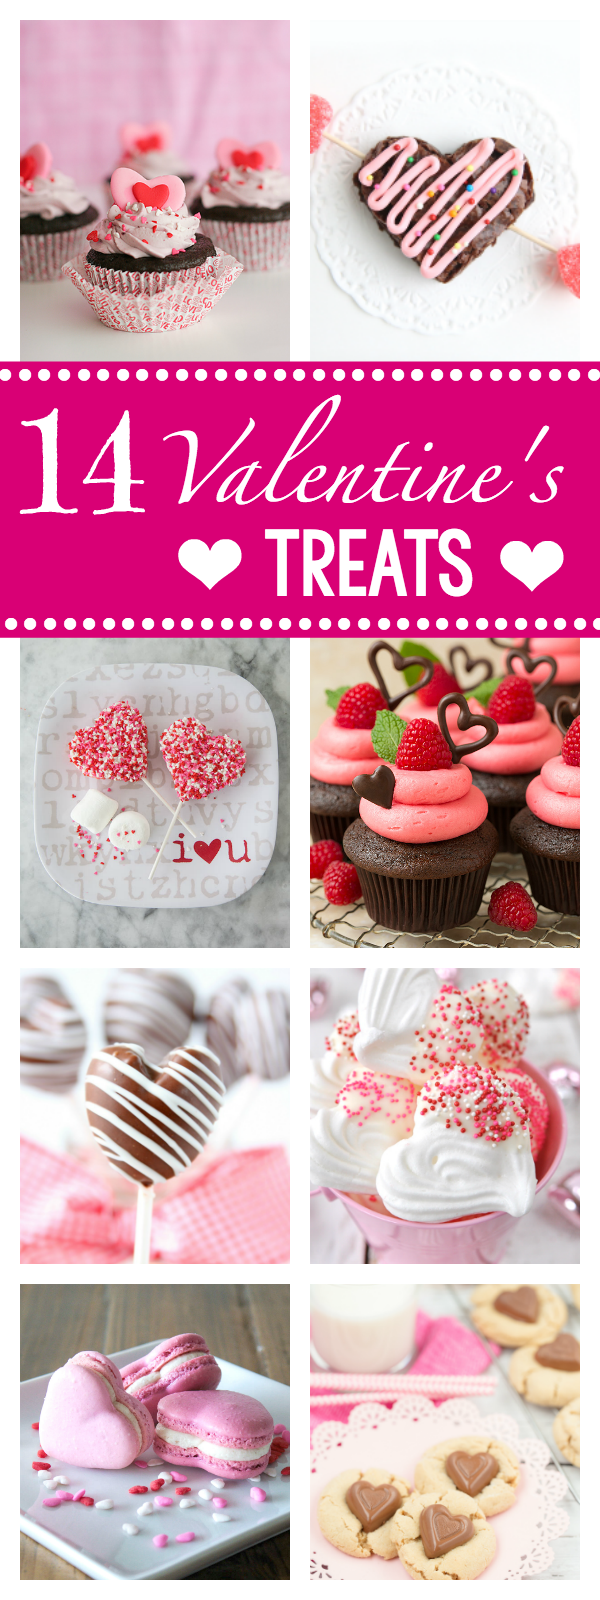 14 Fun Valentine Treat Ideas to Make this Valentine's Day-Perfect with parties, for kids or as a romantic dessert. So many treats, so little time! #valentinesday #valentinestreats #funforvalentinesday #valentinesday